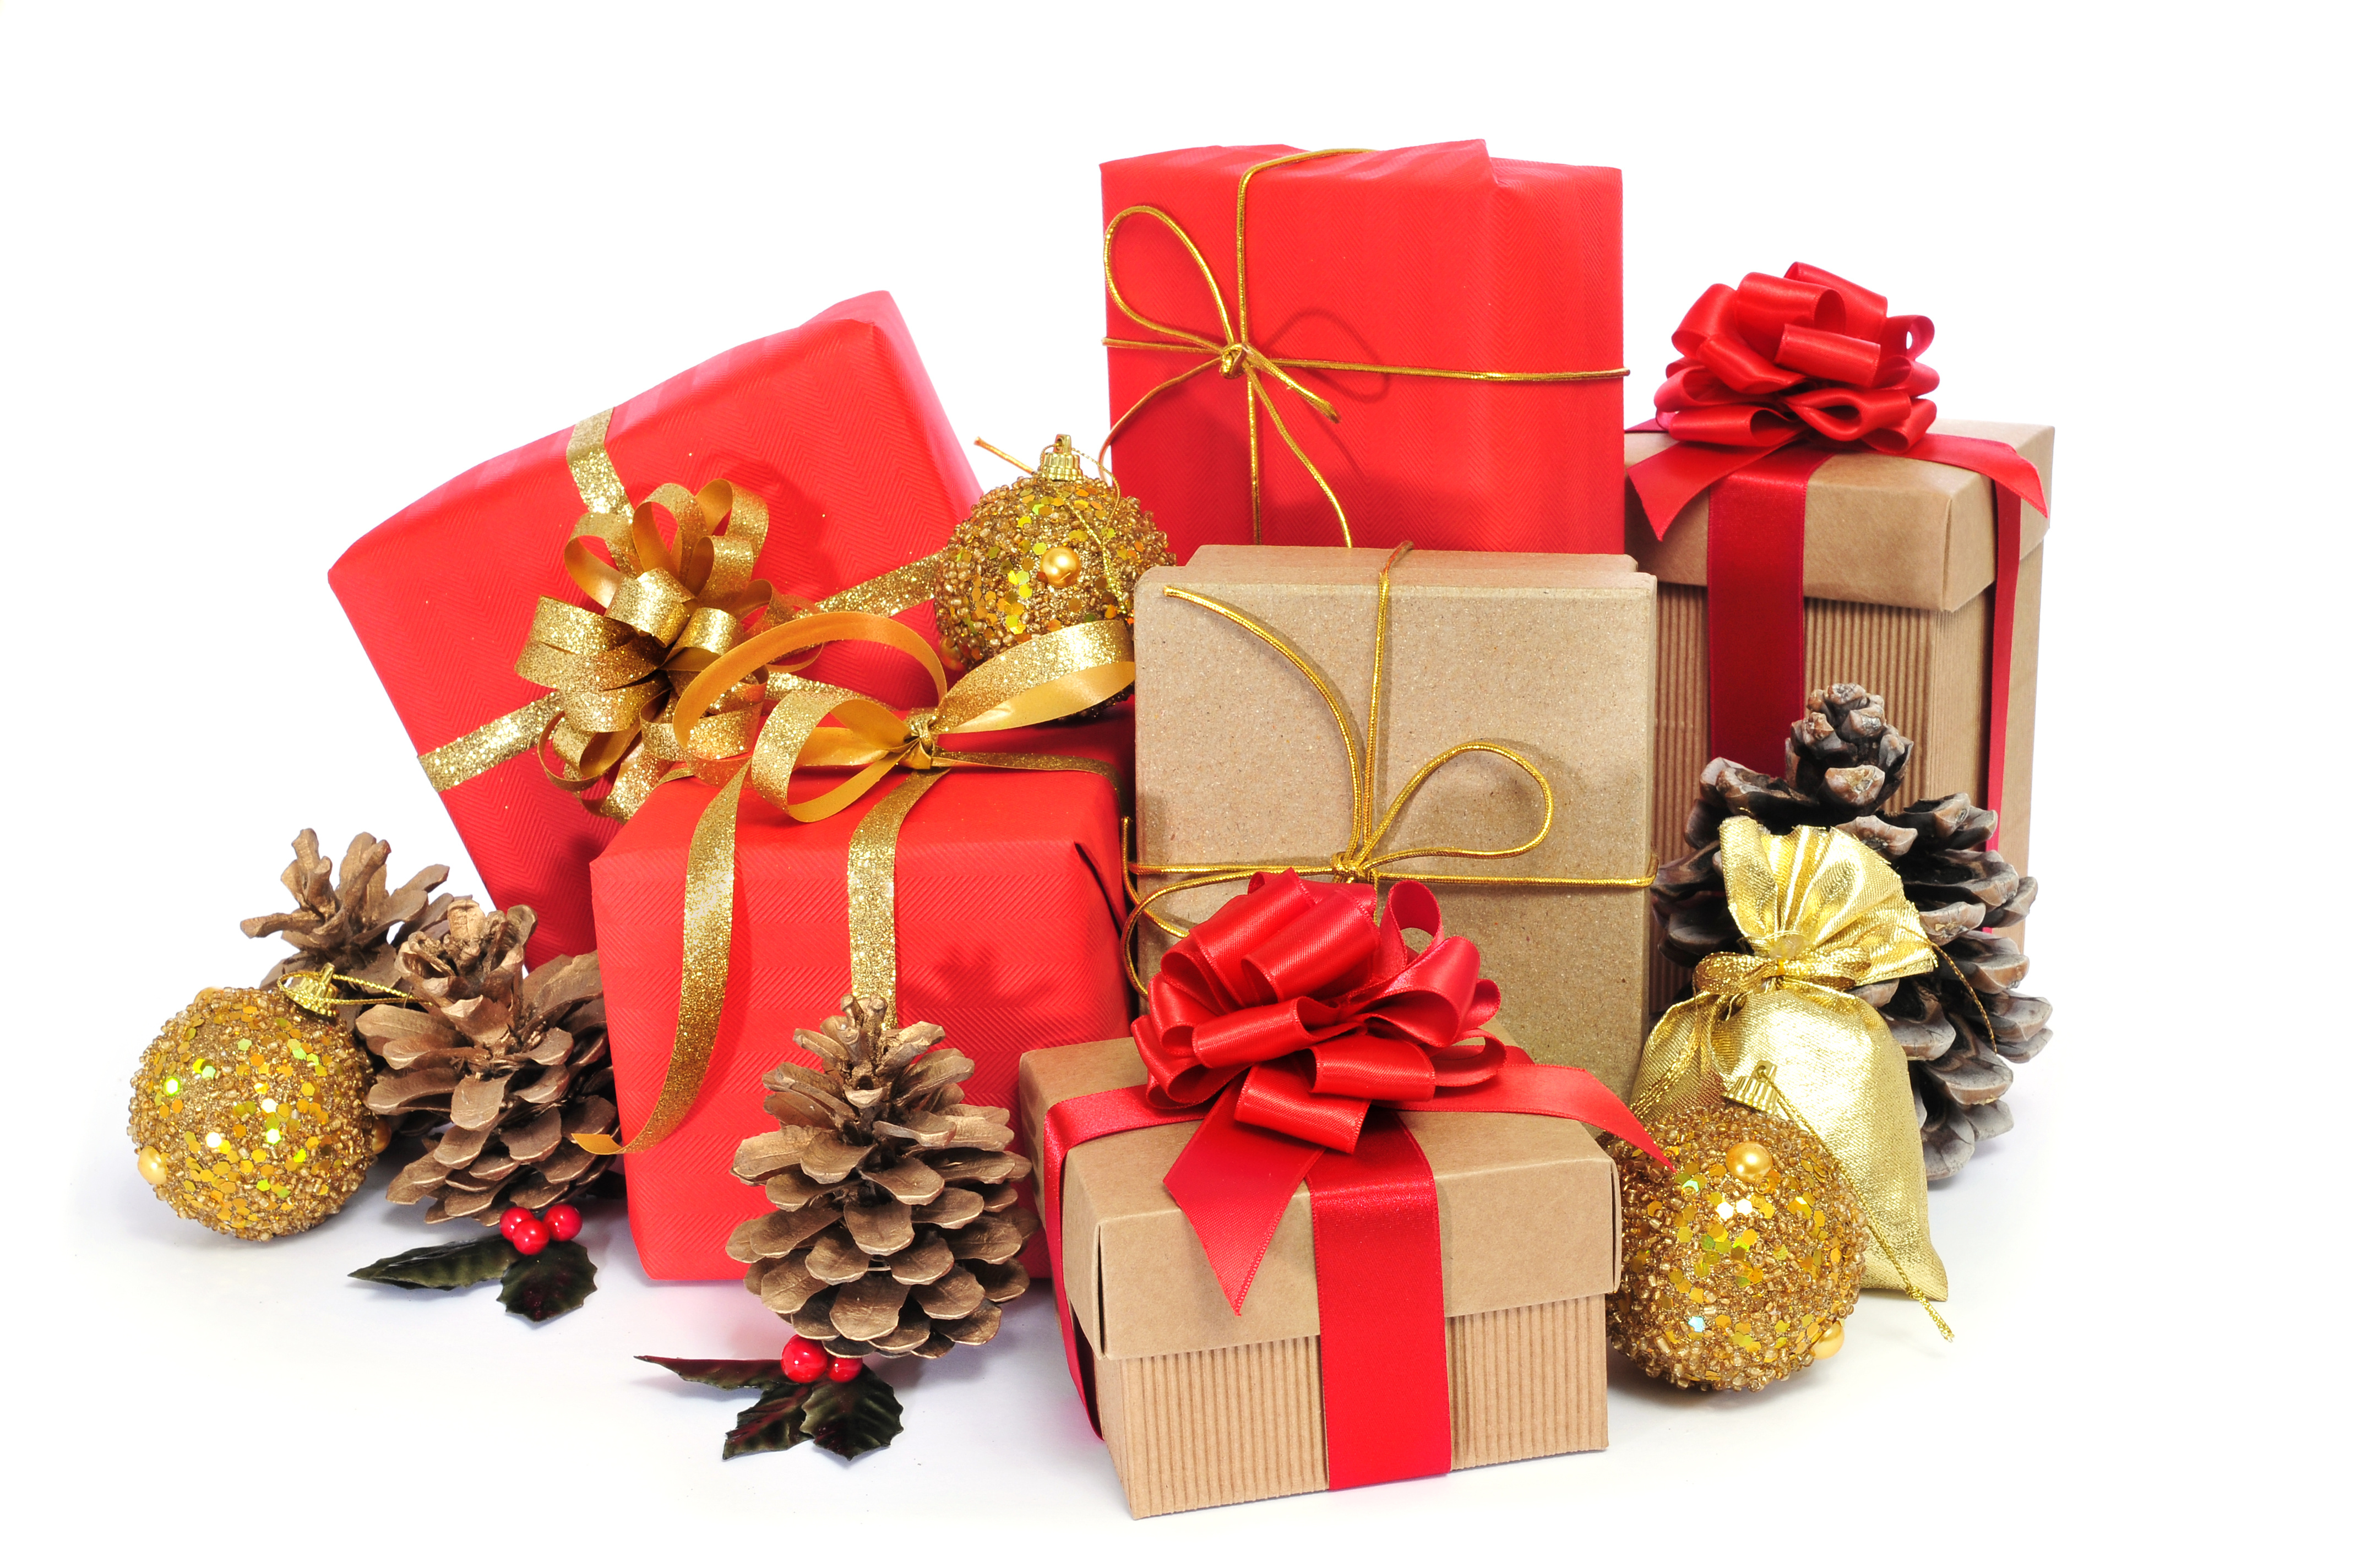 Christmas Presents - Security Risk? - Locksmiths Blog ...